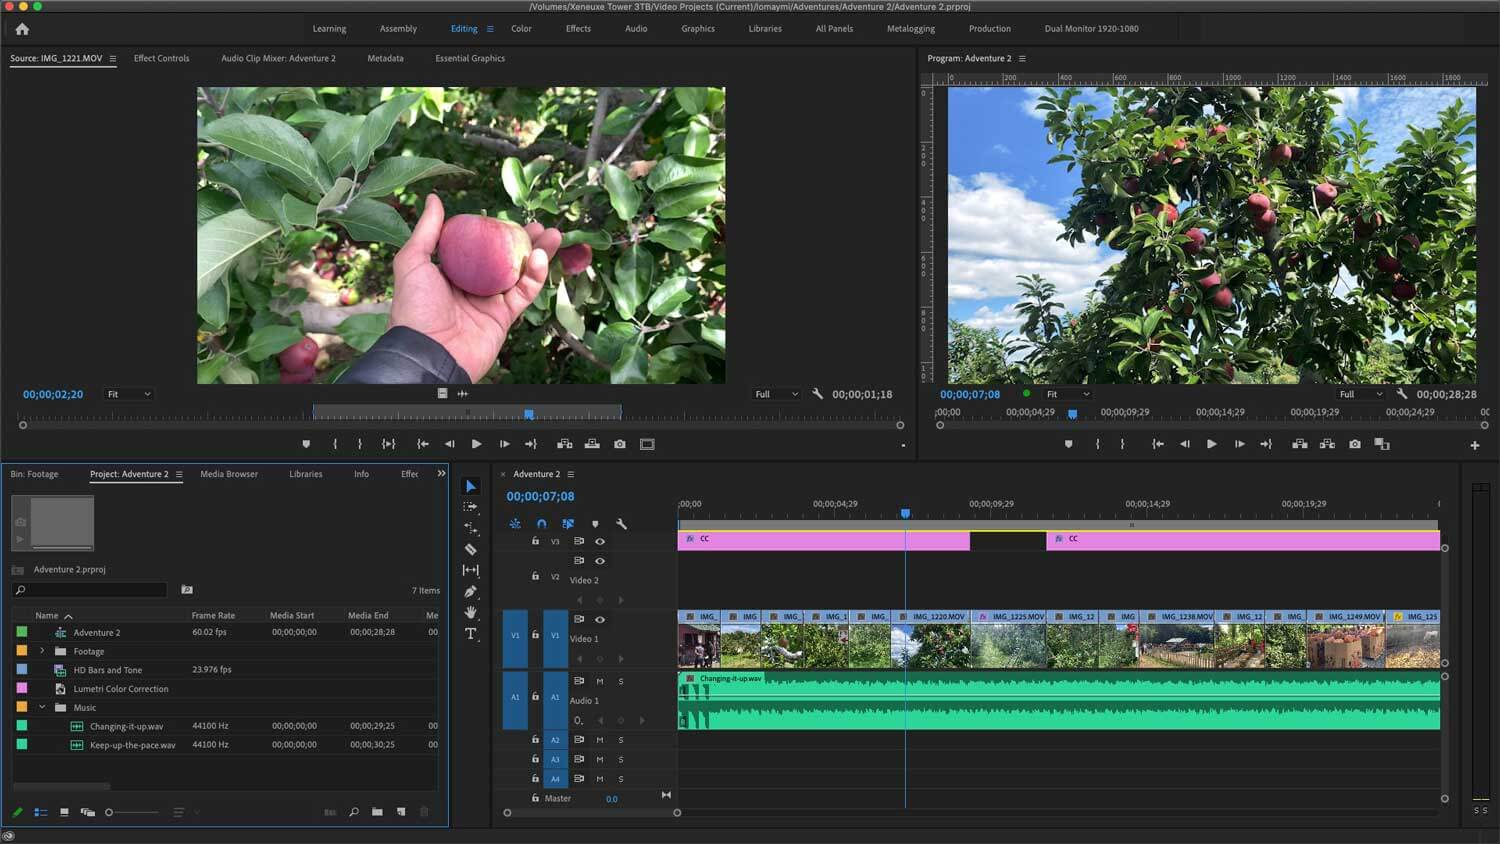 Adobe Premiere Pro 2021 Crack V15.4.0.47 With Universal Patcher Free Download